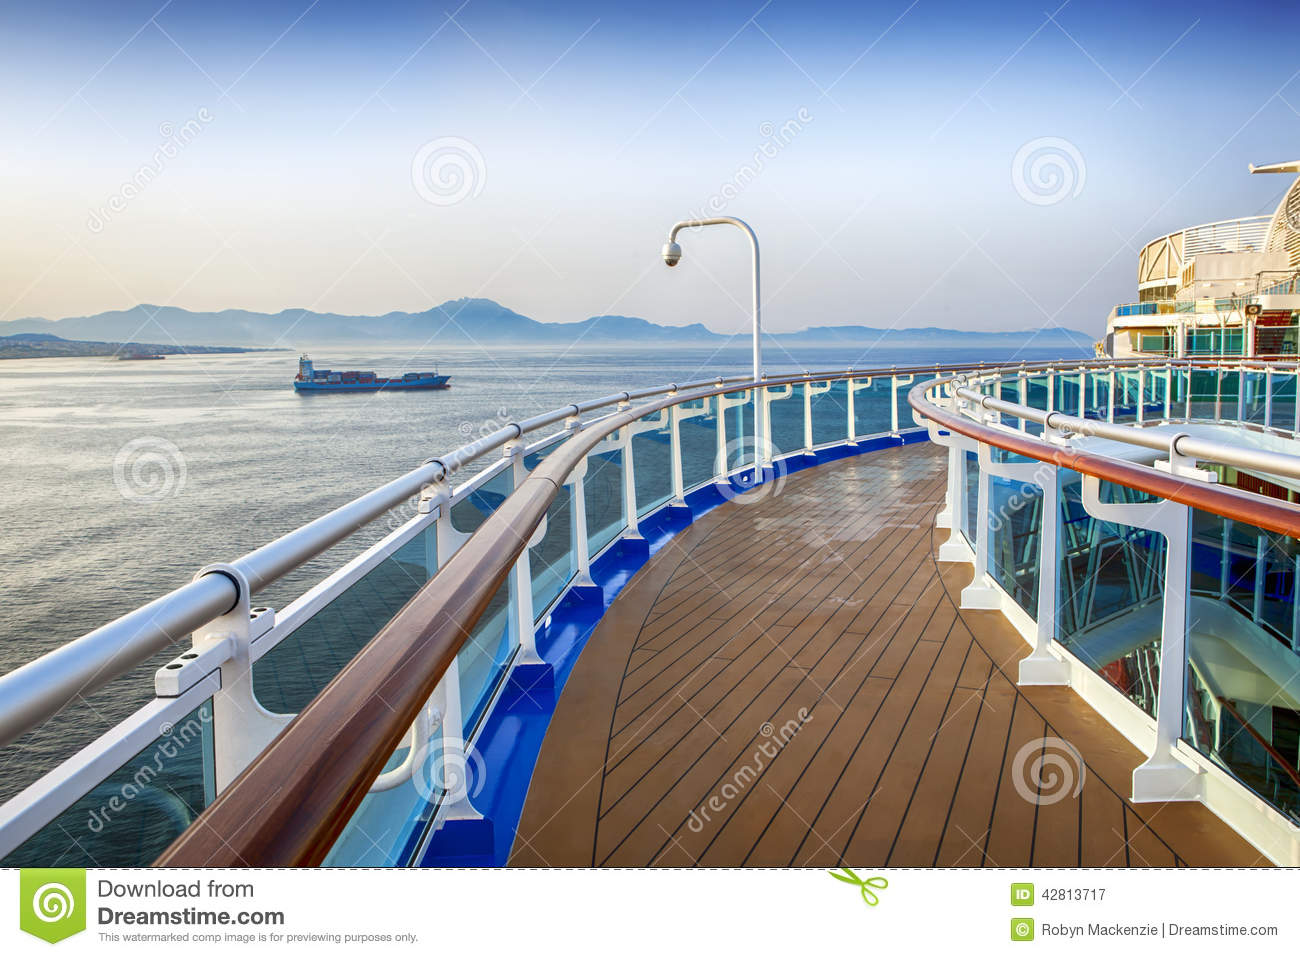 Deck of luxury cruise ship, overlooking islands in the Mediterranean.